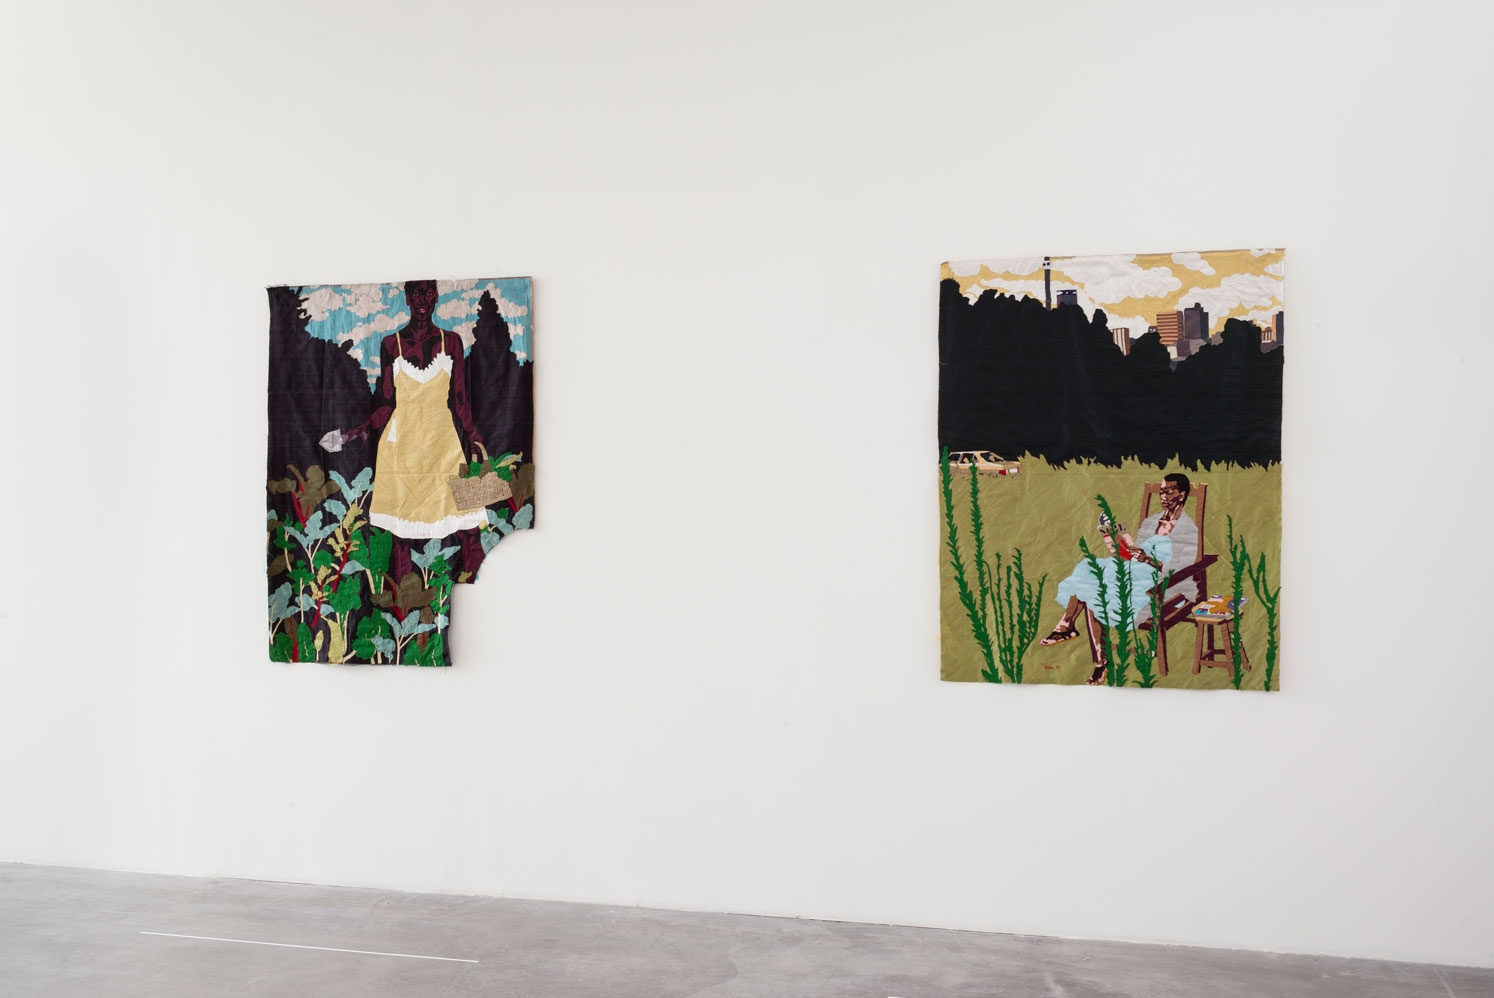 BILLIE ZANGEWA, Body Talk: Feminism, Sexuality and the Body in the Work of Six African Women Artists